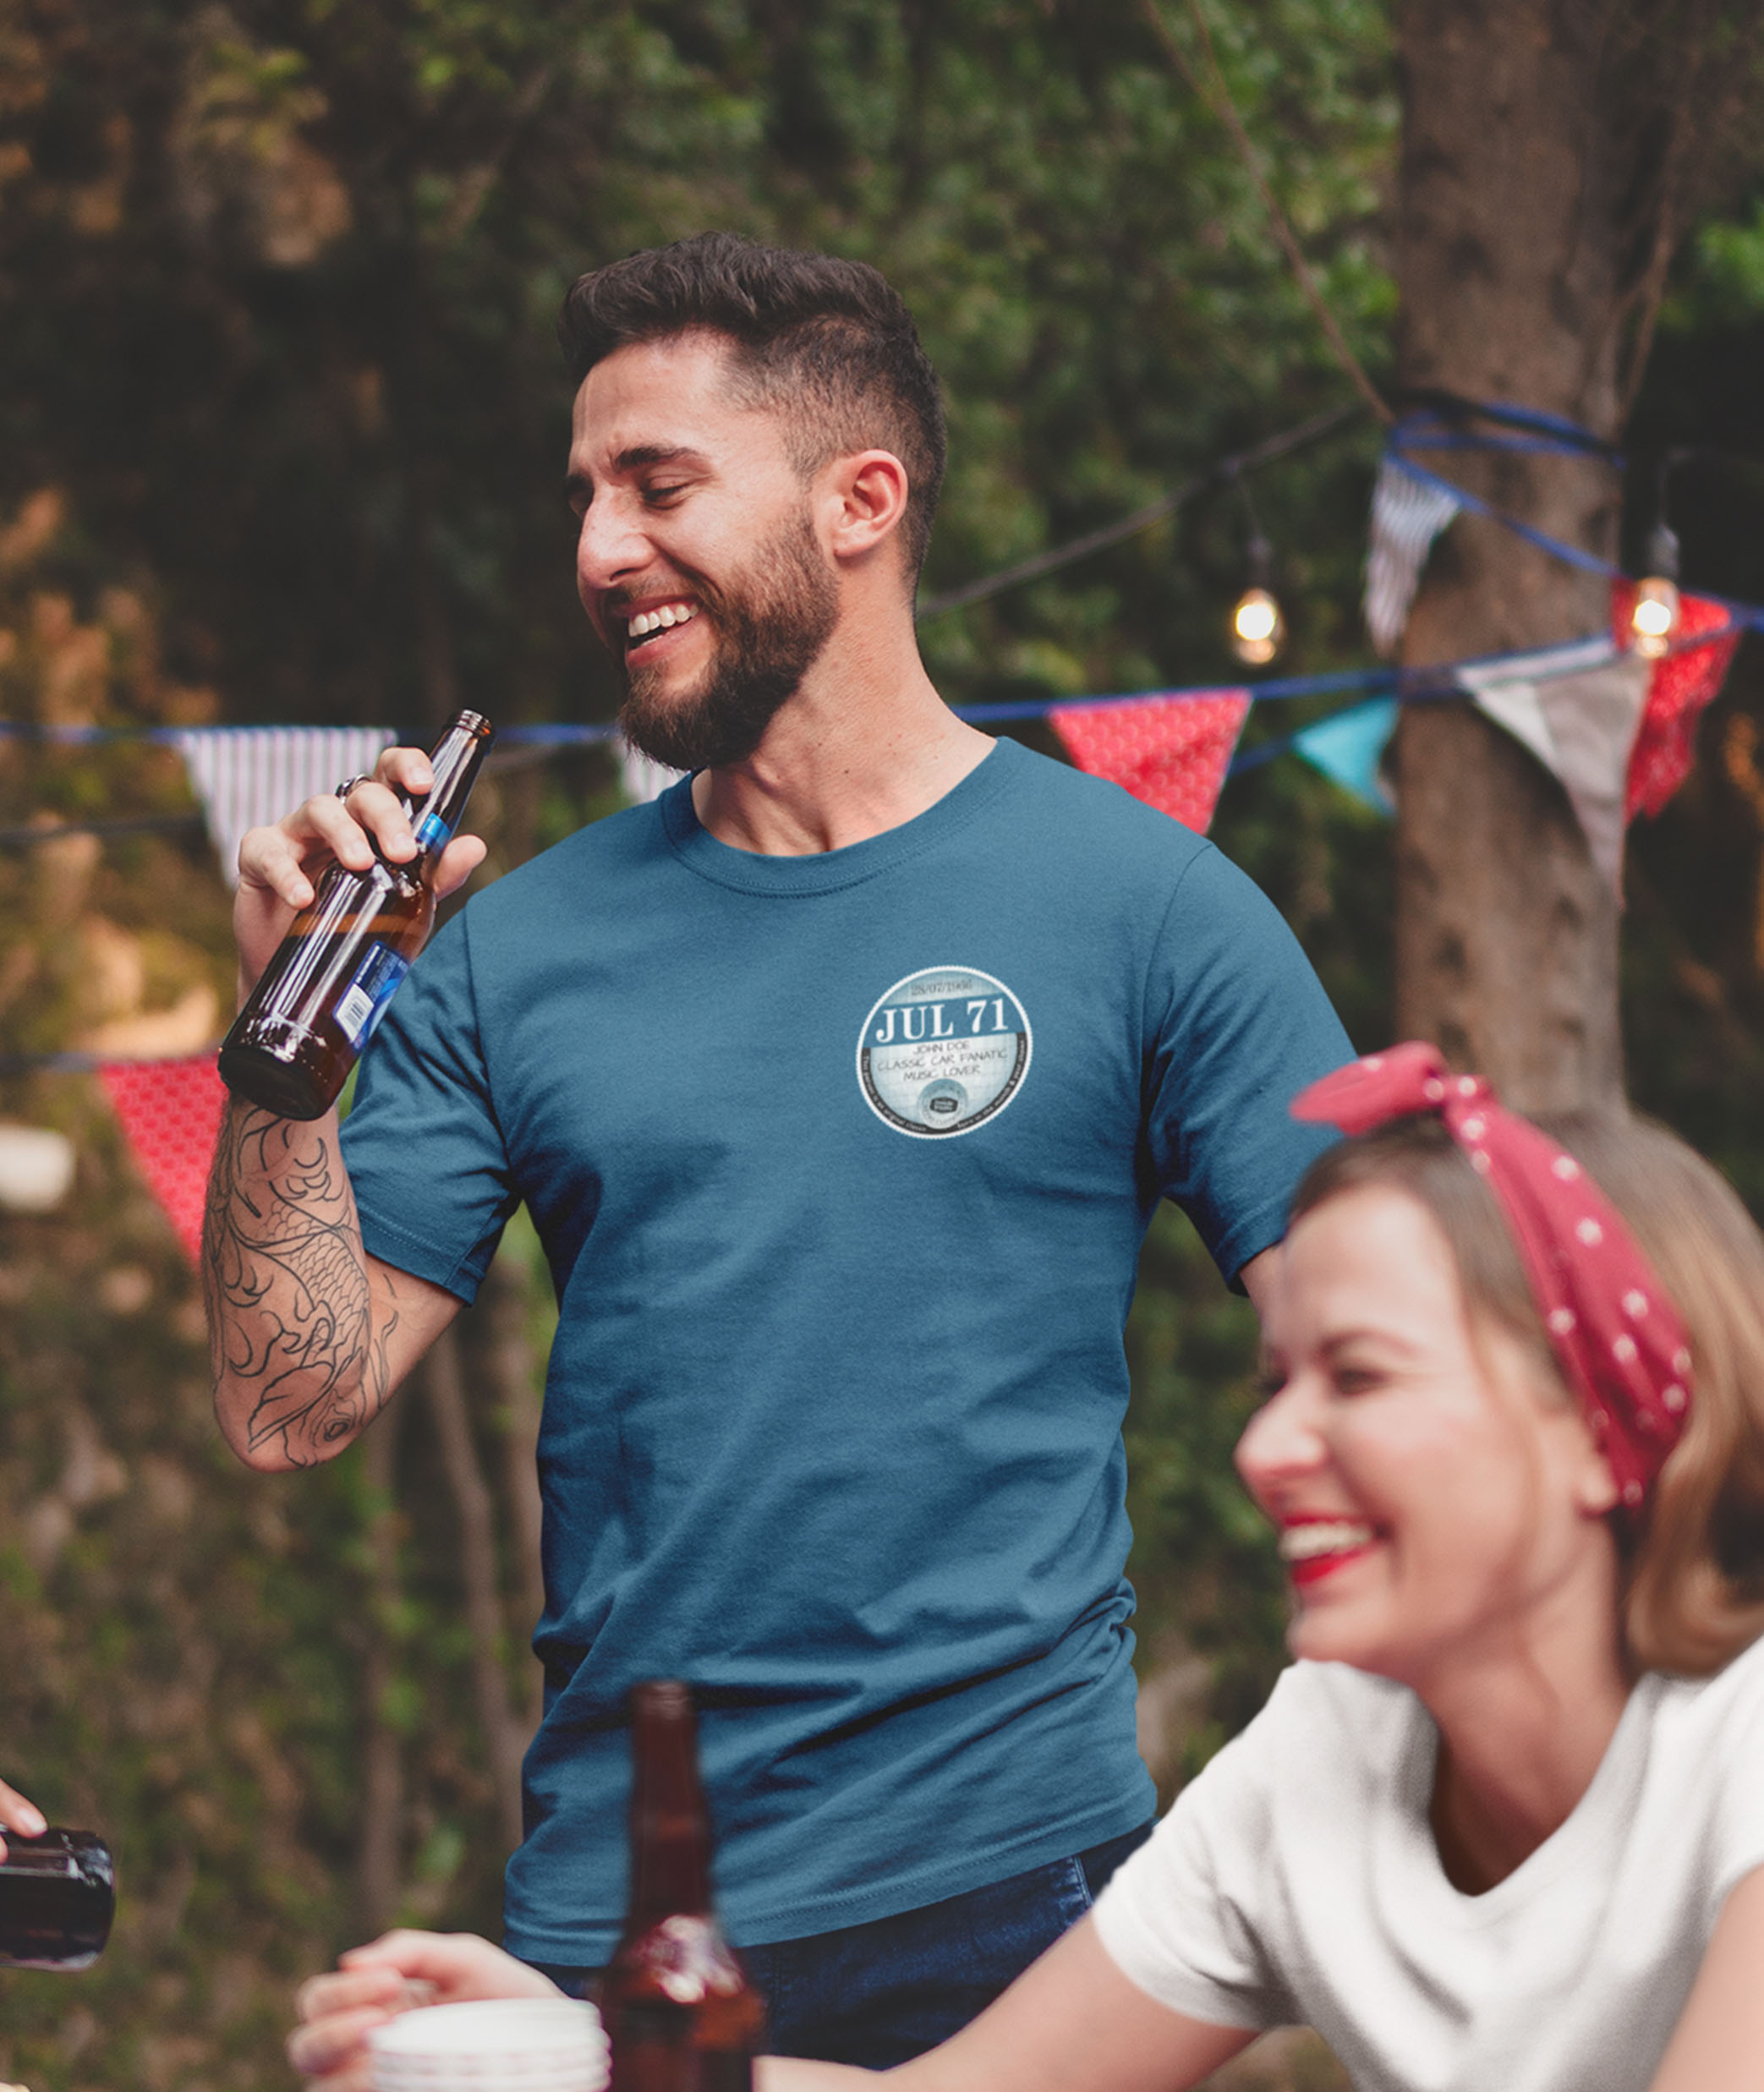 Man with beer wearing indigo July 71 left chest tax disc t shirt